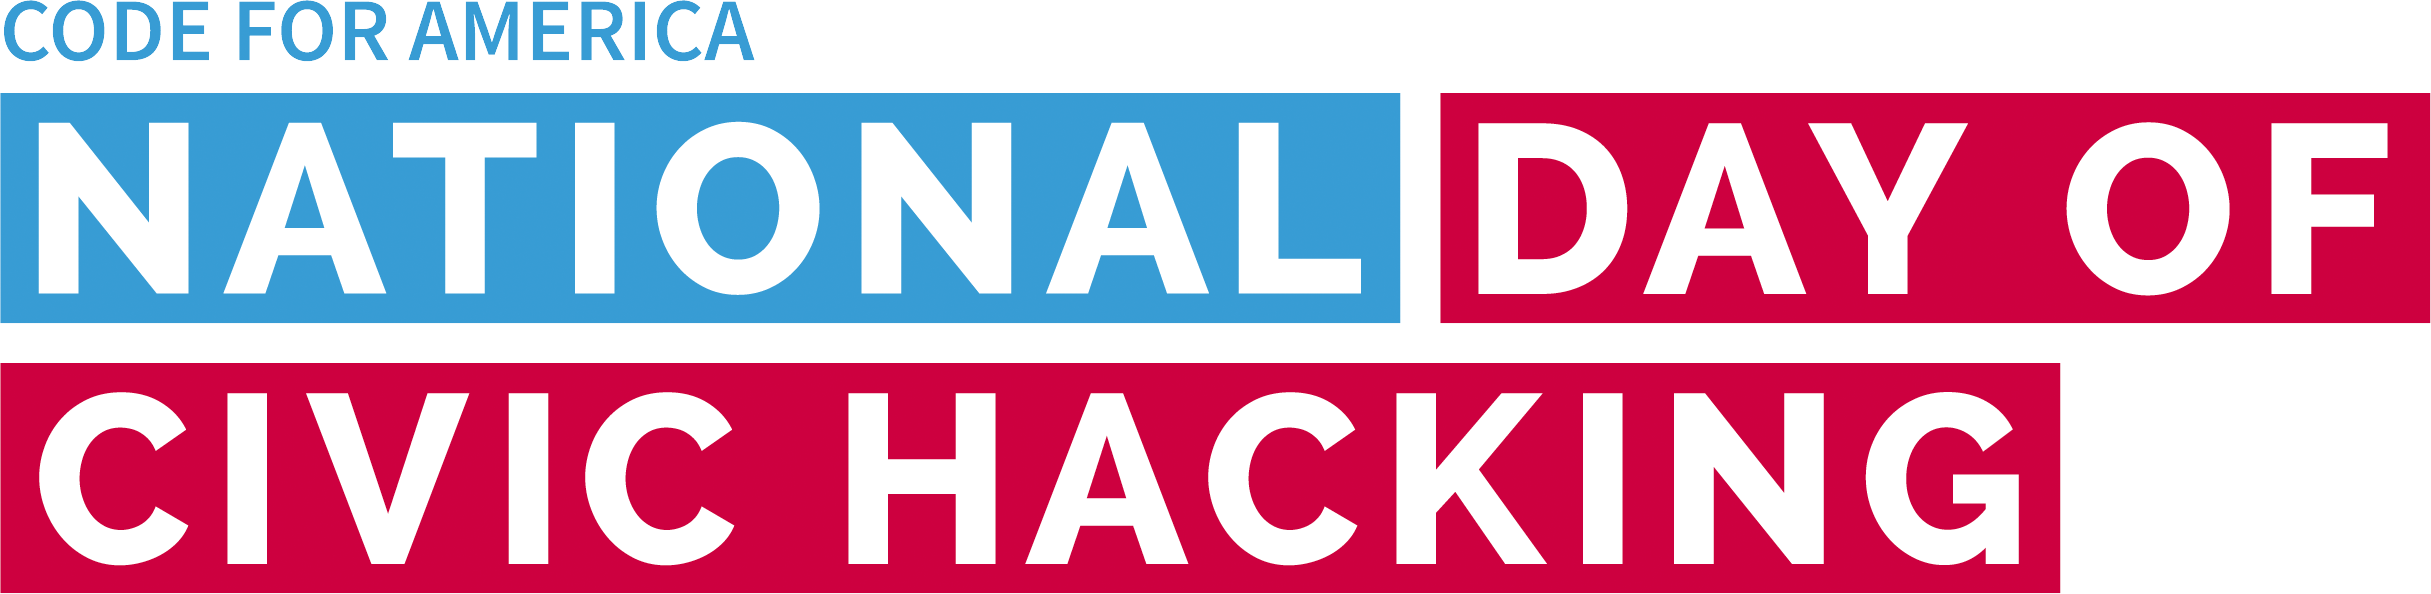 National Day of Civic Hacking 2019